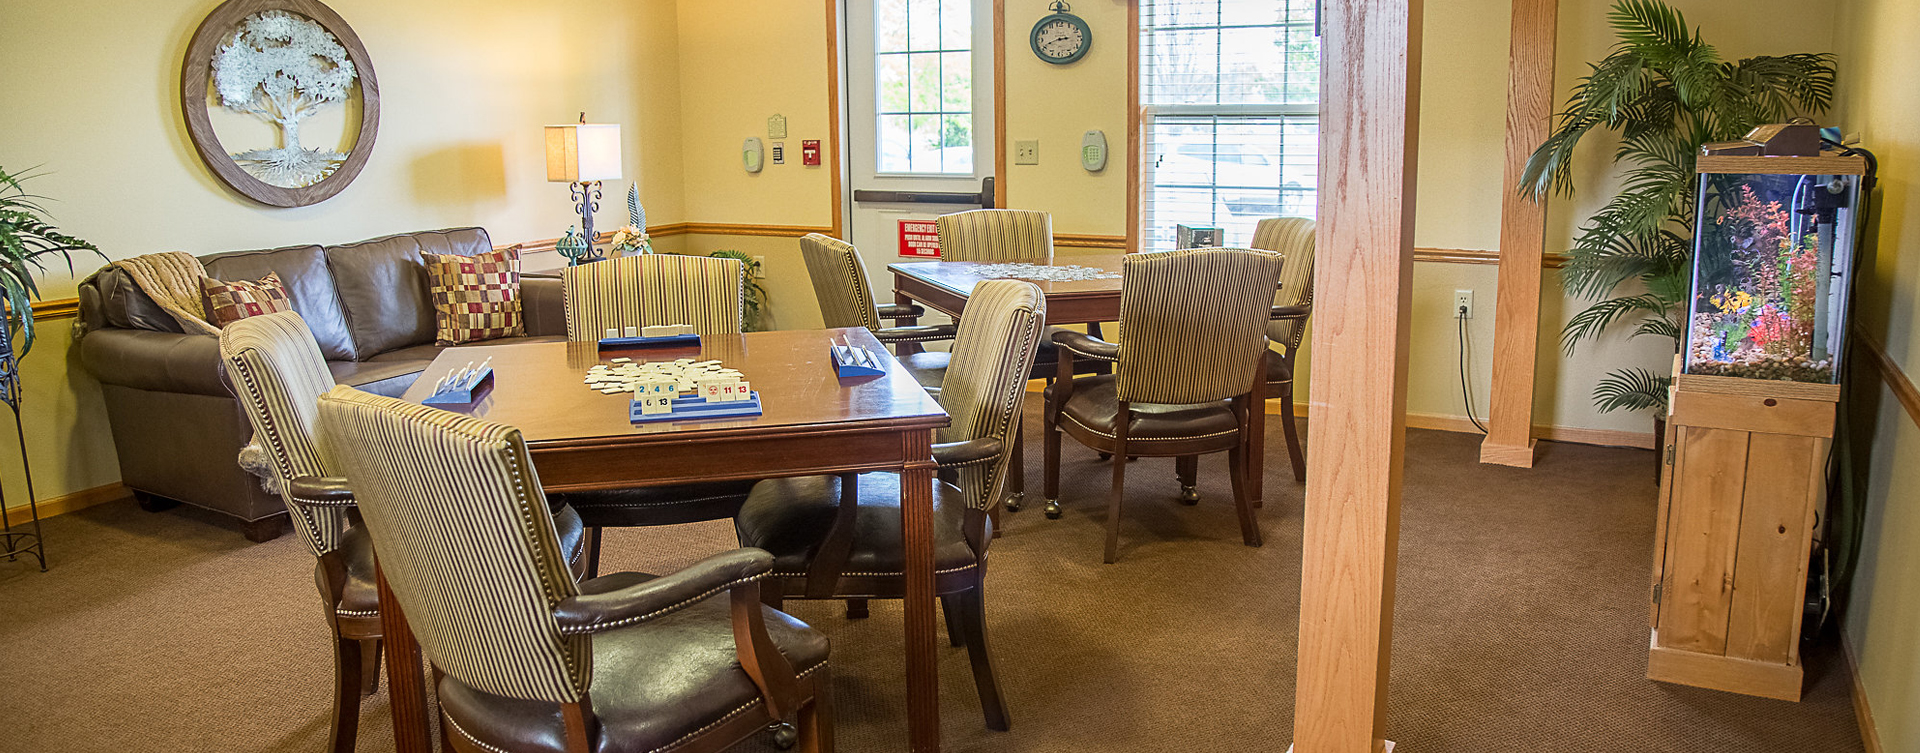 Enjoy a good card game with friends in the activity room at Bickford of Burlington